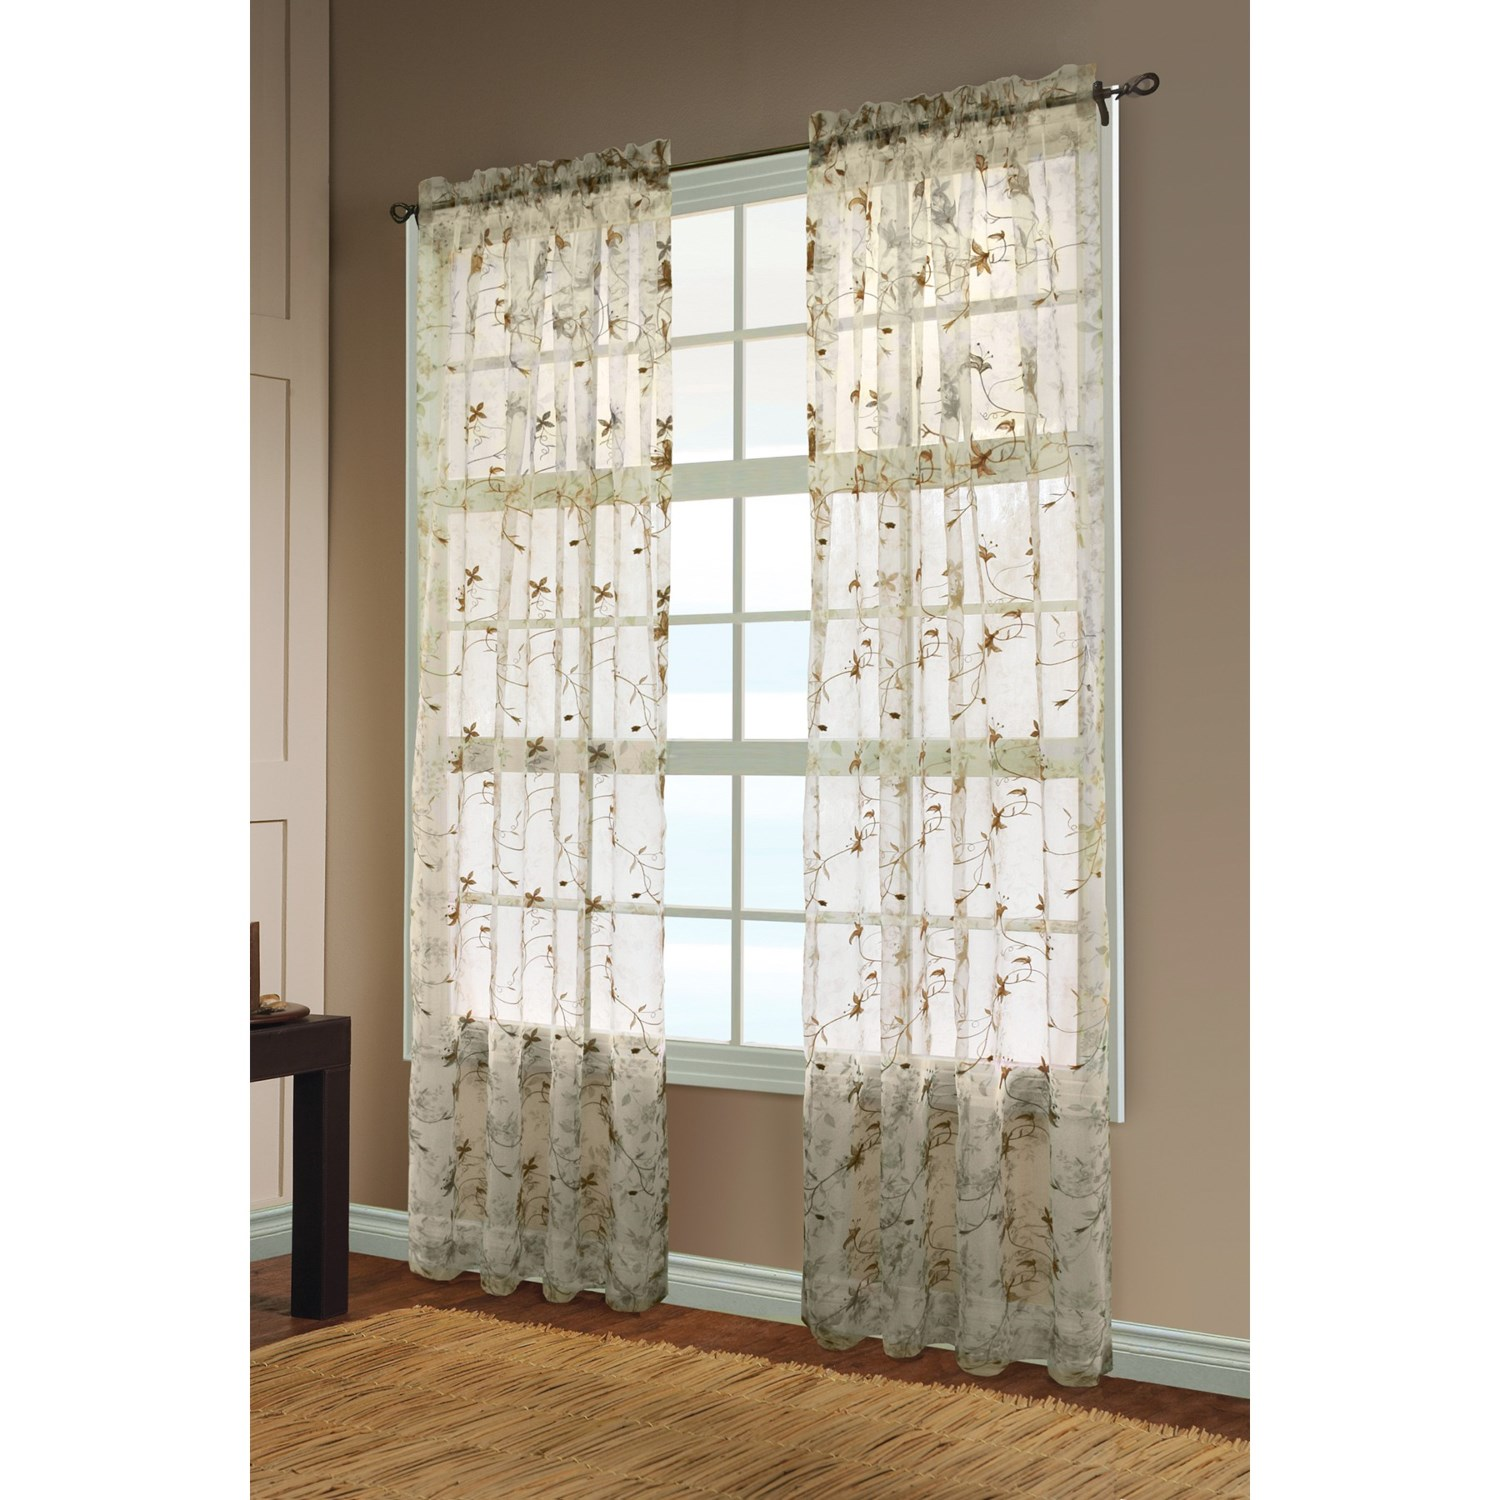 "... Embroidered Floral-Print Sheer Curtains - 108x84"", Rod-Pocket Top"